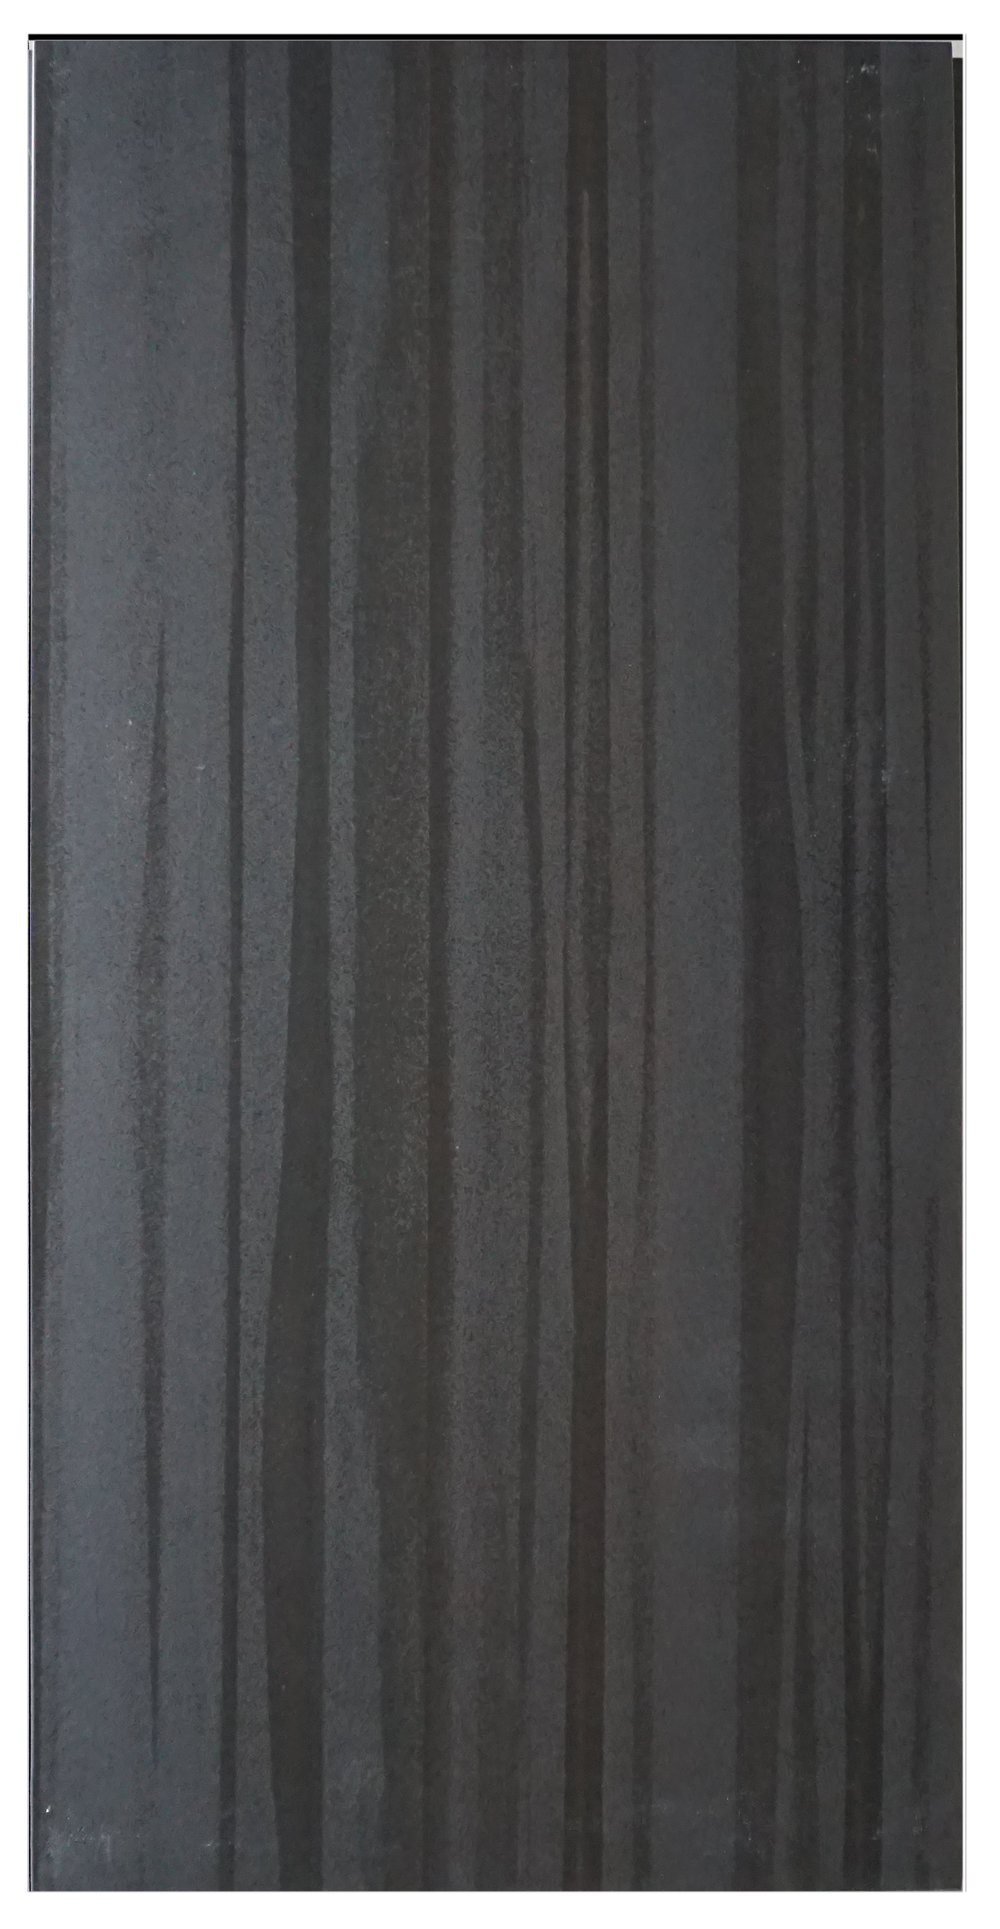 "GALAXY MIDNIGHT 12""X24"" - GLAZED PORCELAIN 8 PC/CTN (15.5 SF); 40 CTN/PLT"